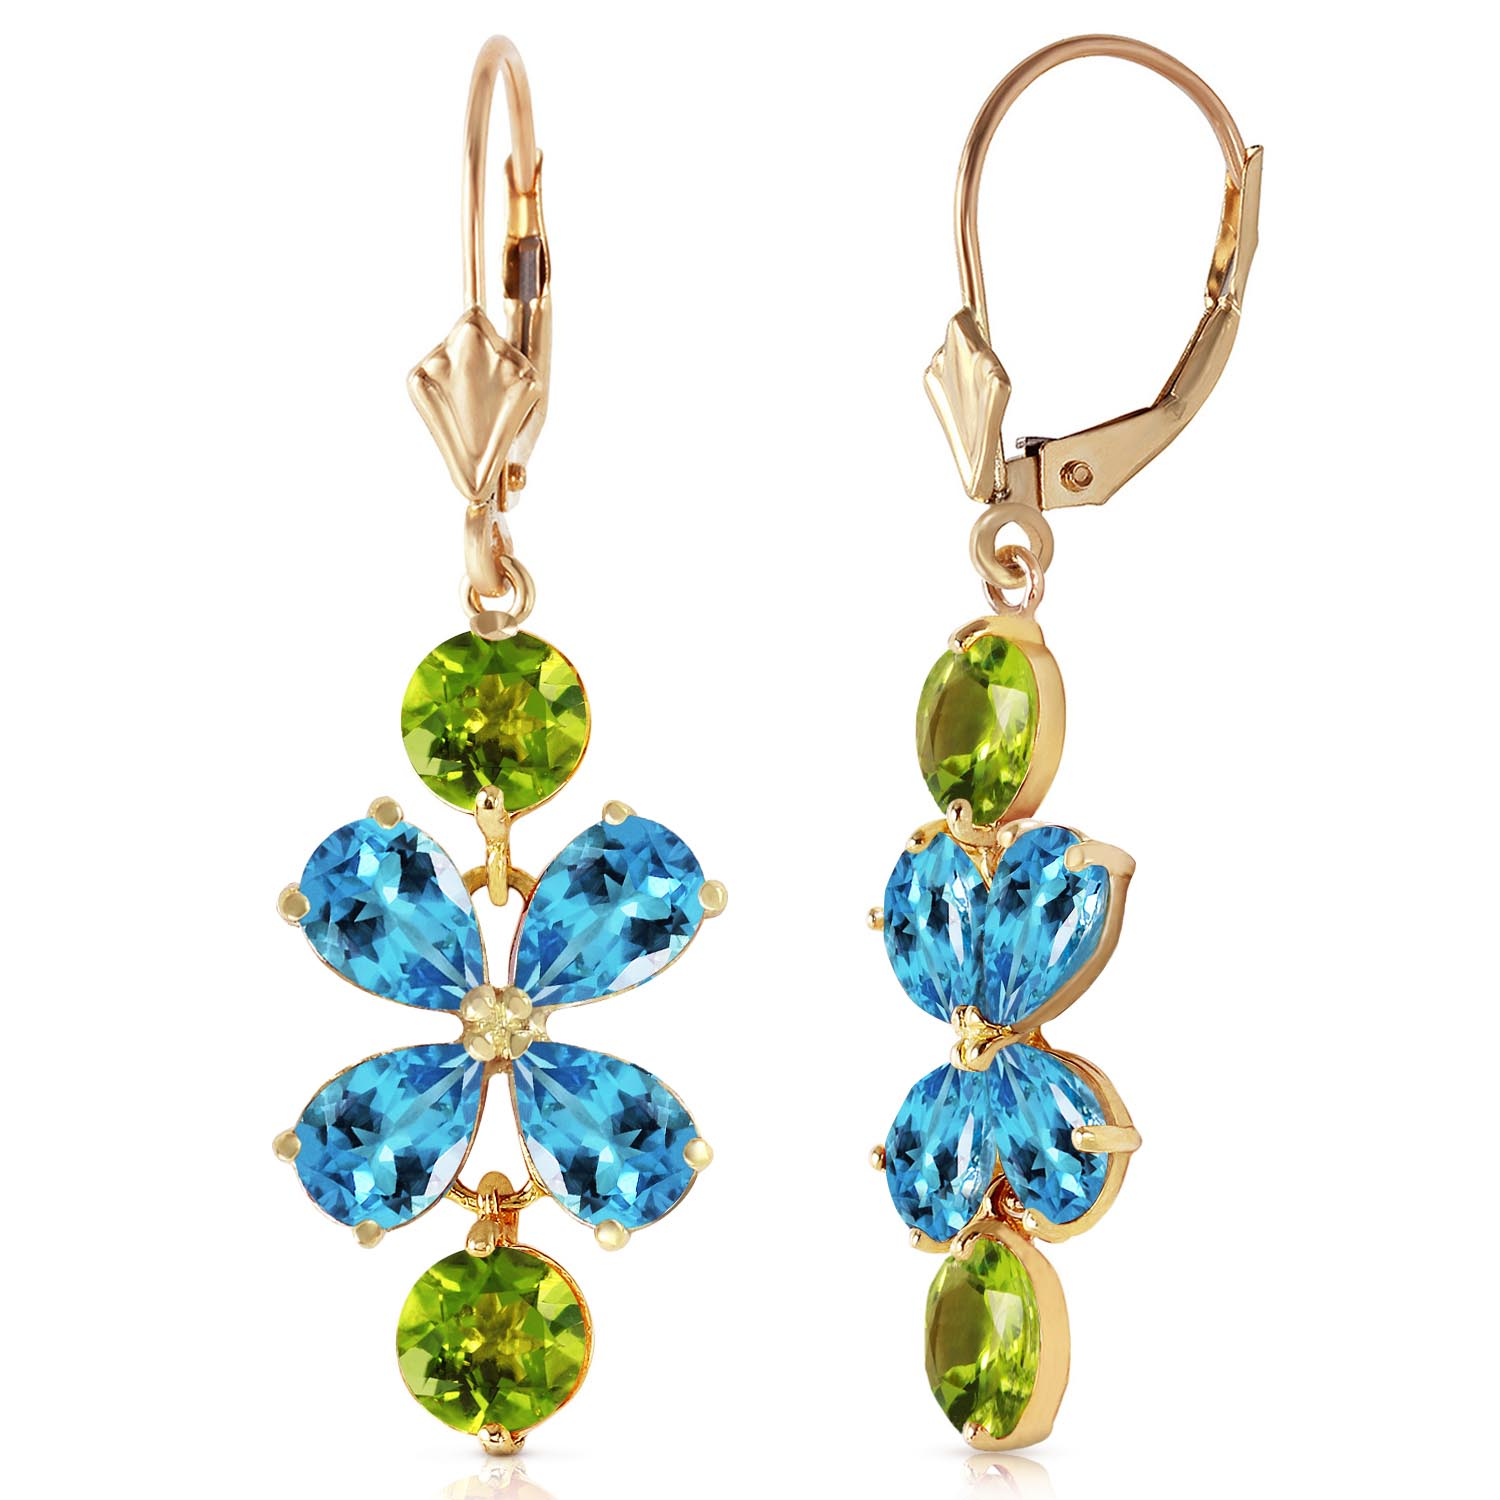 Blue Topaz and Peridot Blossom Drop Earrings 5.32ctw in 9ct Gold